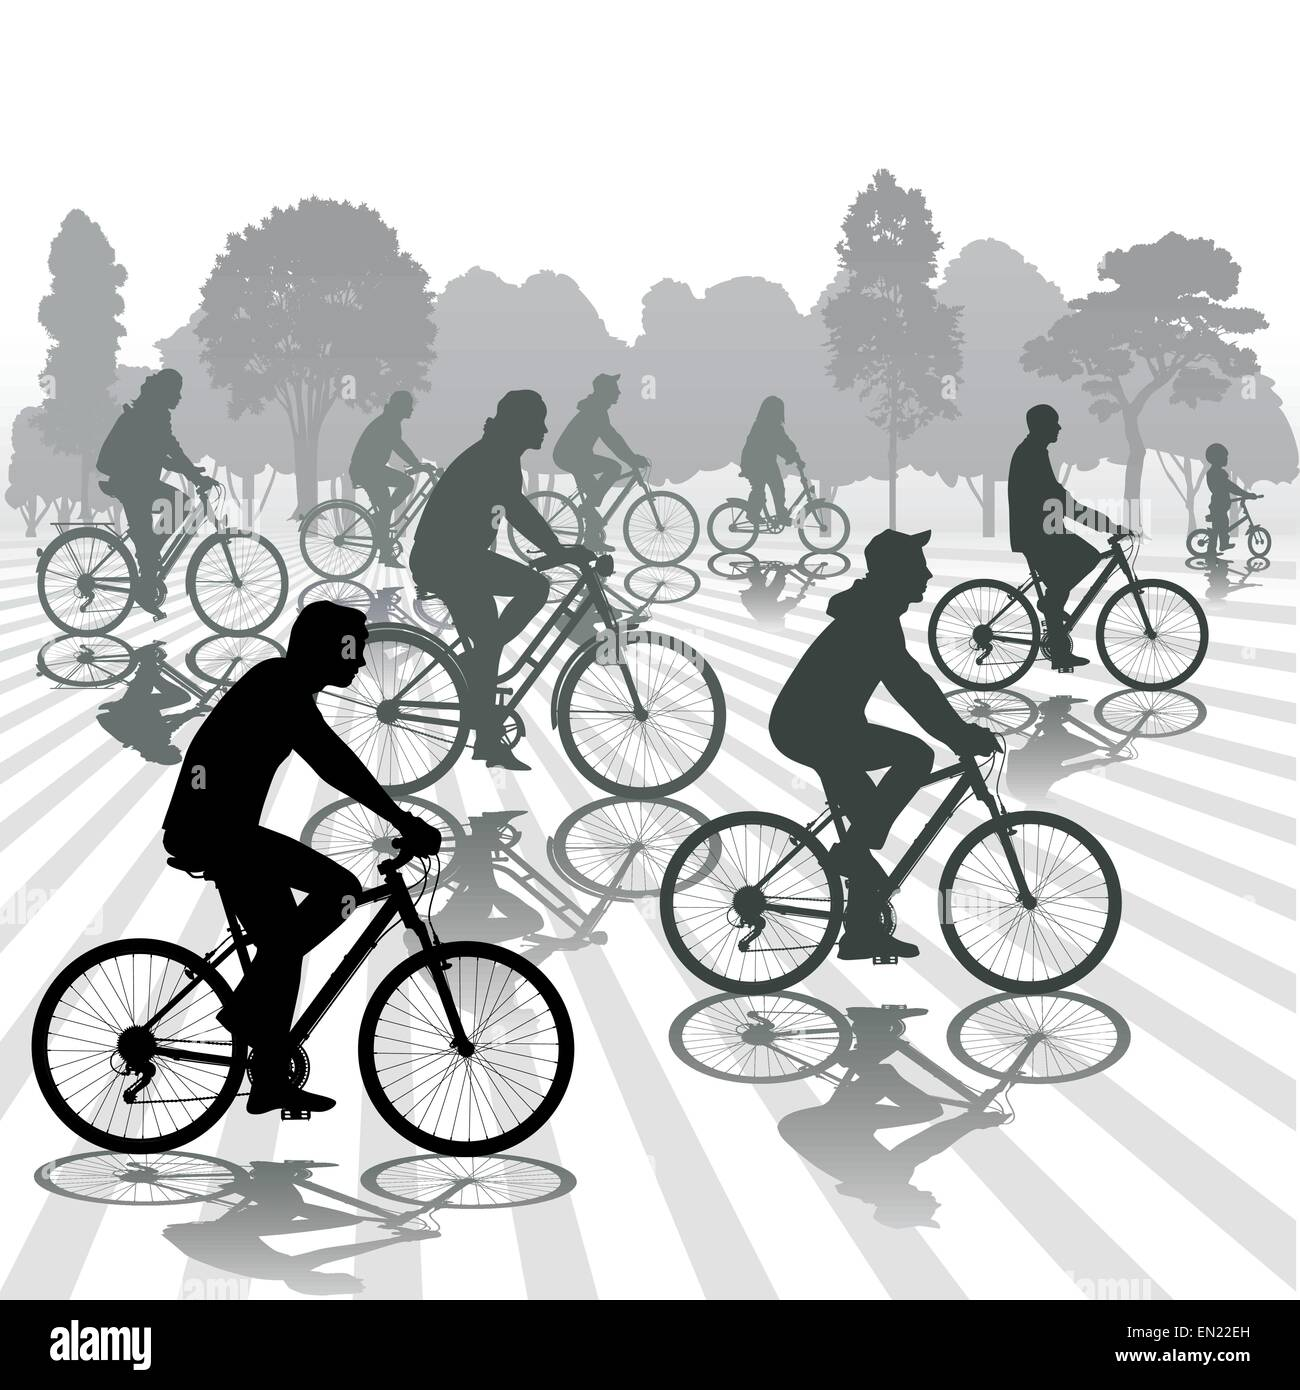 Cyclists silhouettes. Active people biking in the park. Vector illustration - Stock Vector